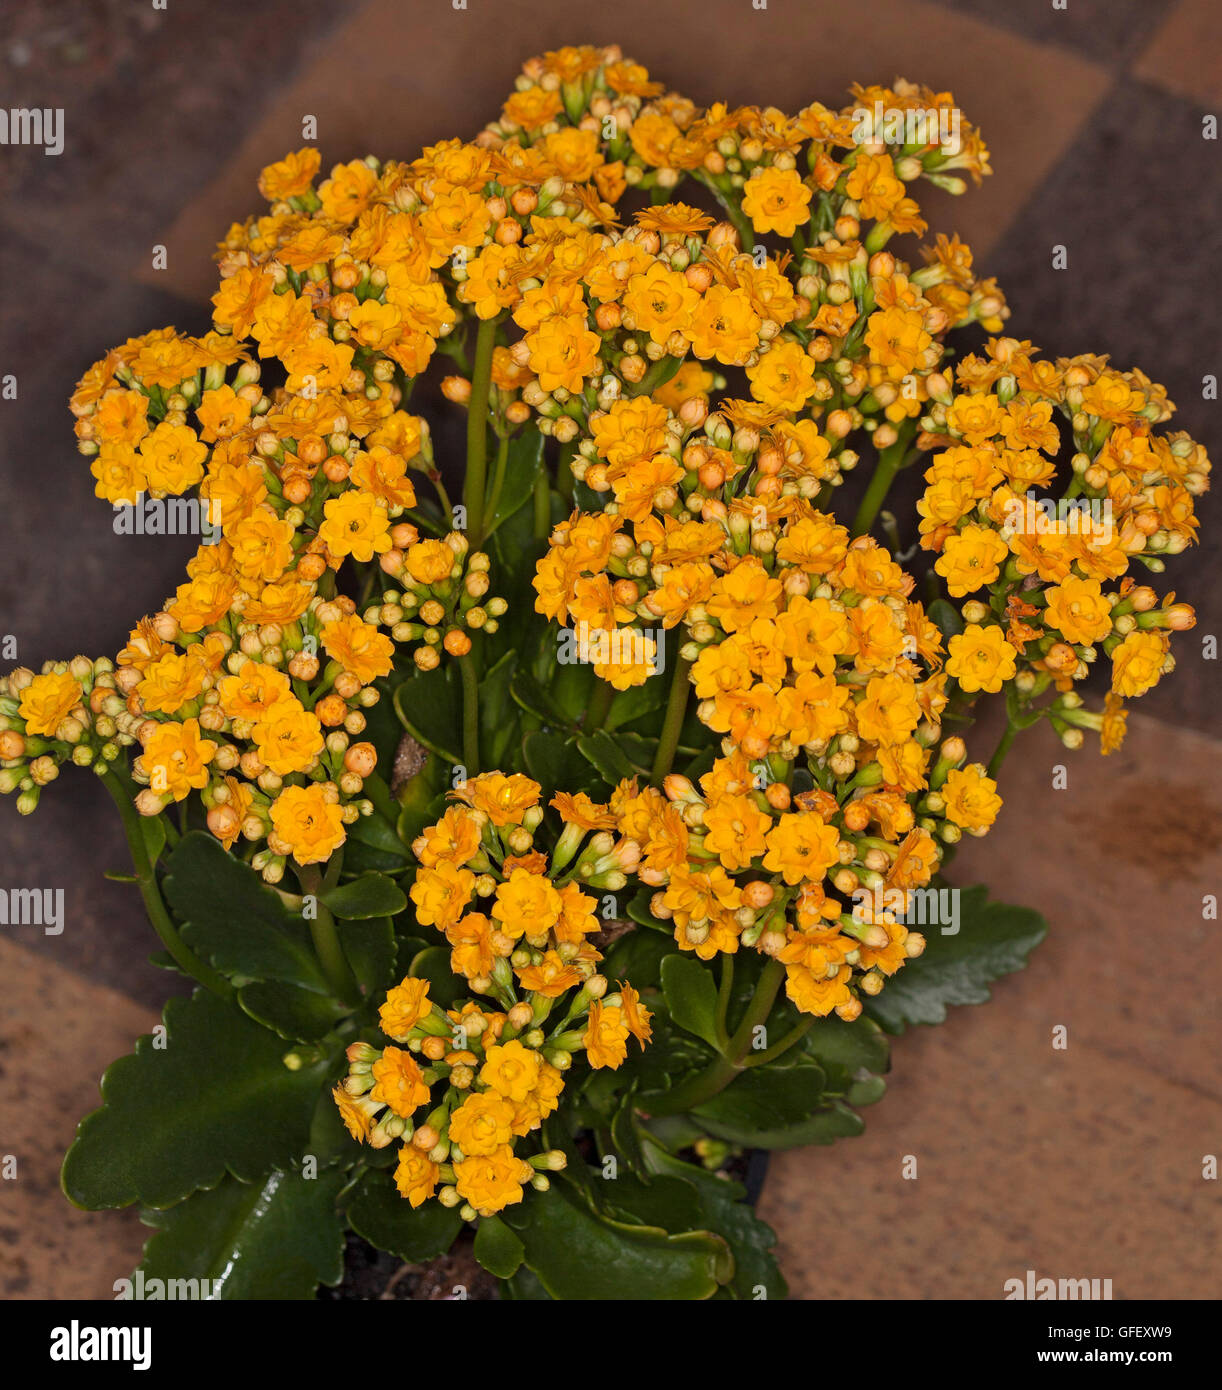 Cluster Of Vivid Double Golden Yellow Flowers And Dark Green Leaves